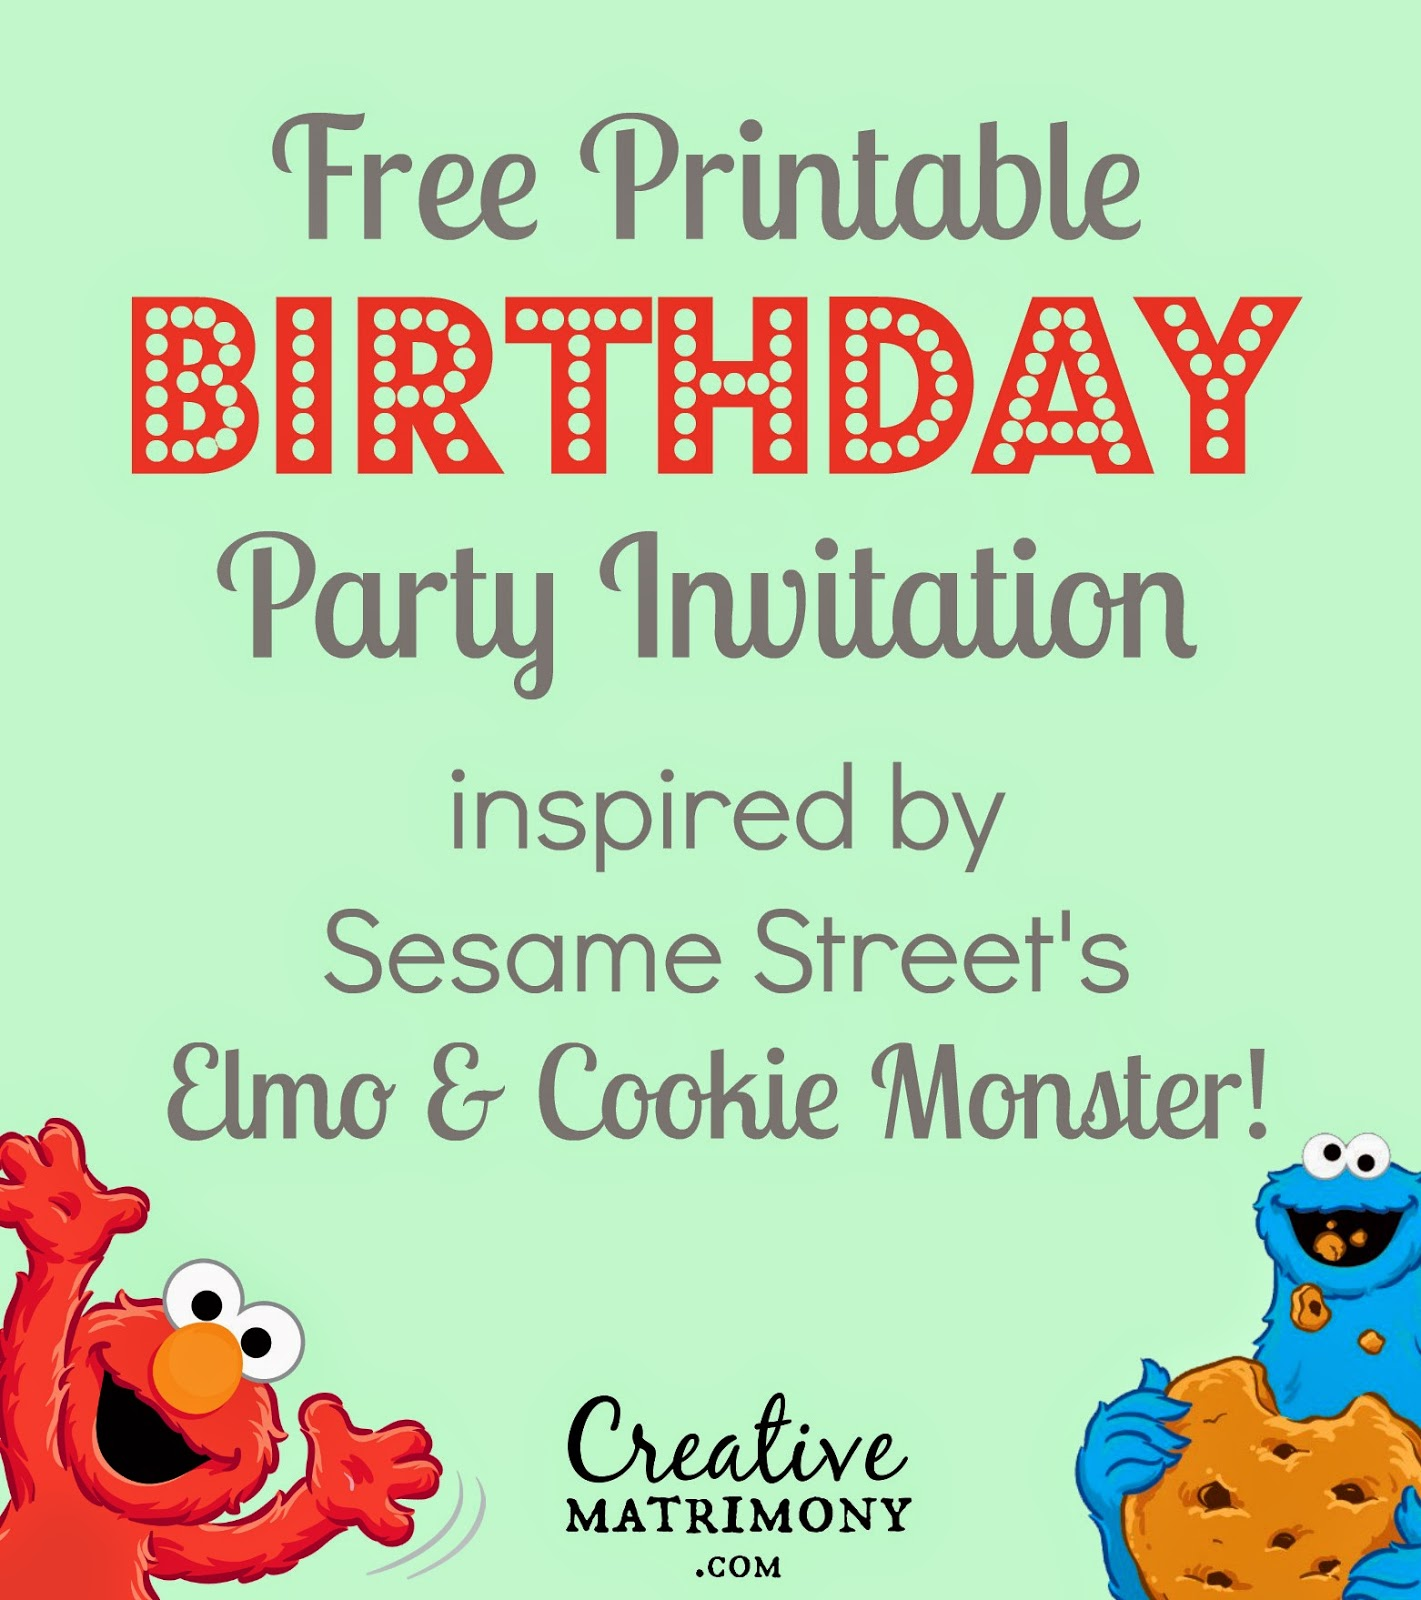 doc 21001500 elmo invitation cards elmo invitation template elmo invitation template printable birthday printable elmo elmo invitation cards